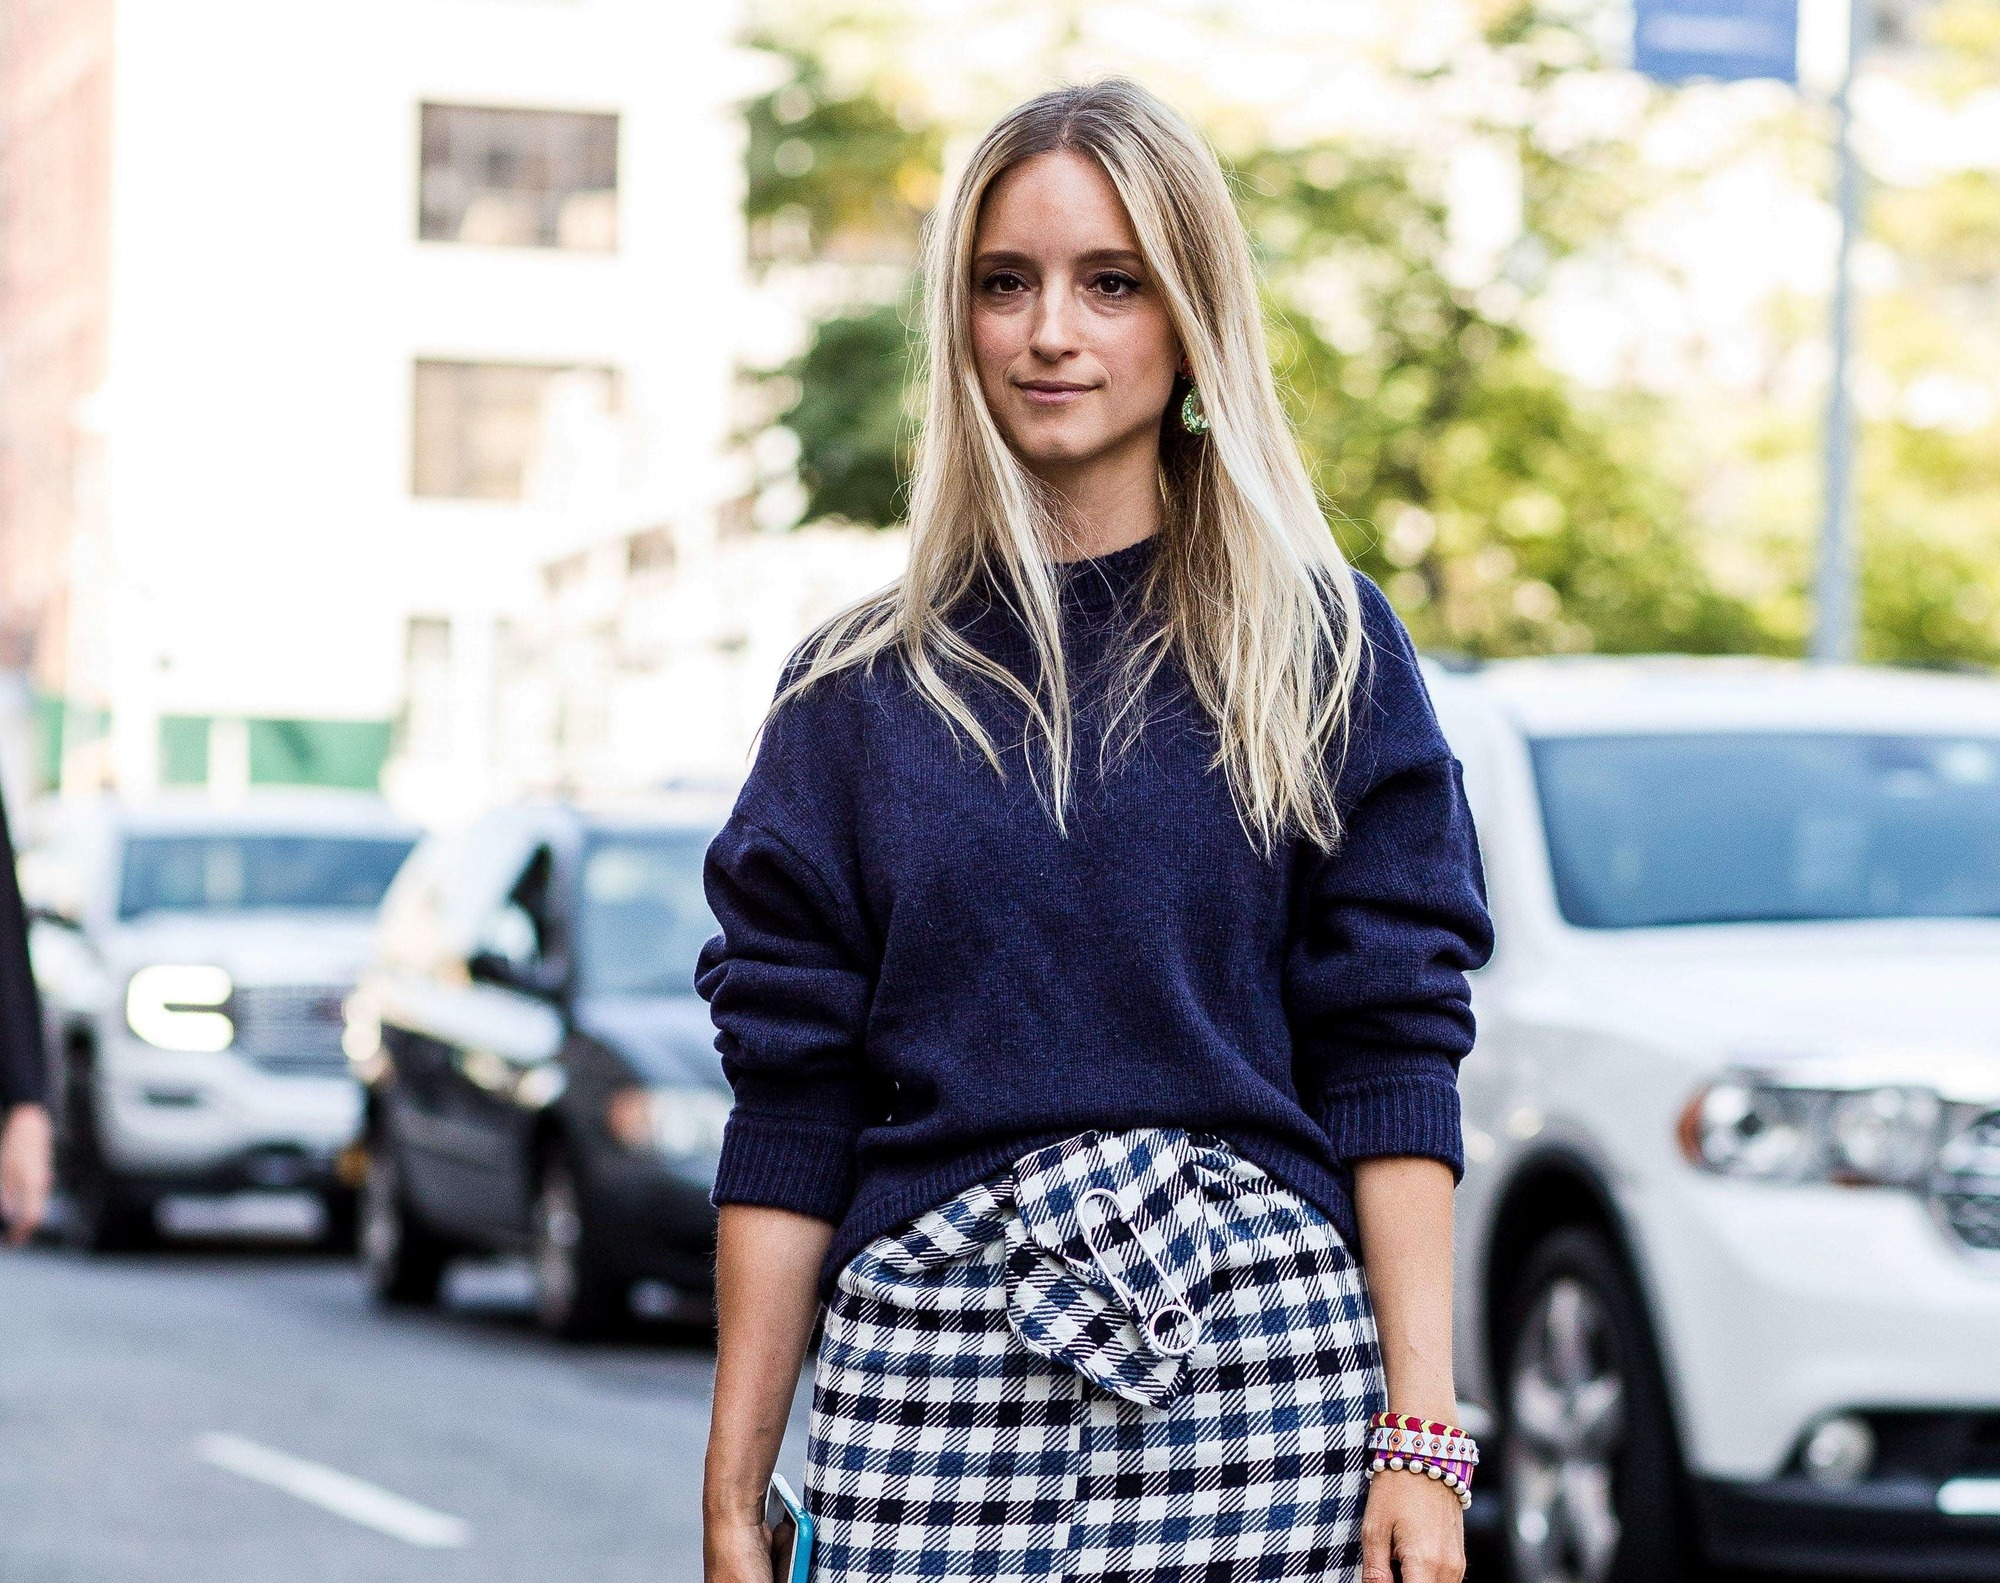 Purple conditioner for blonde hair: Blonde street style blogger with long straight hair wearing a navy jumper and checkered skirt